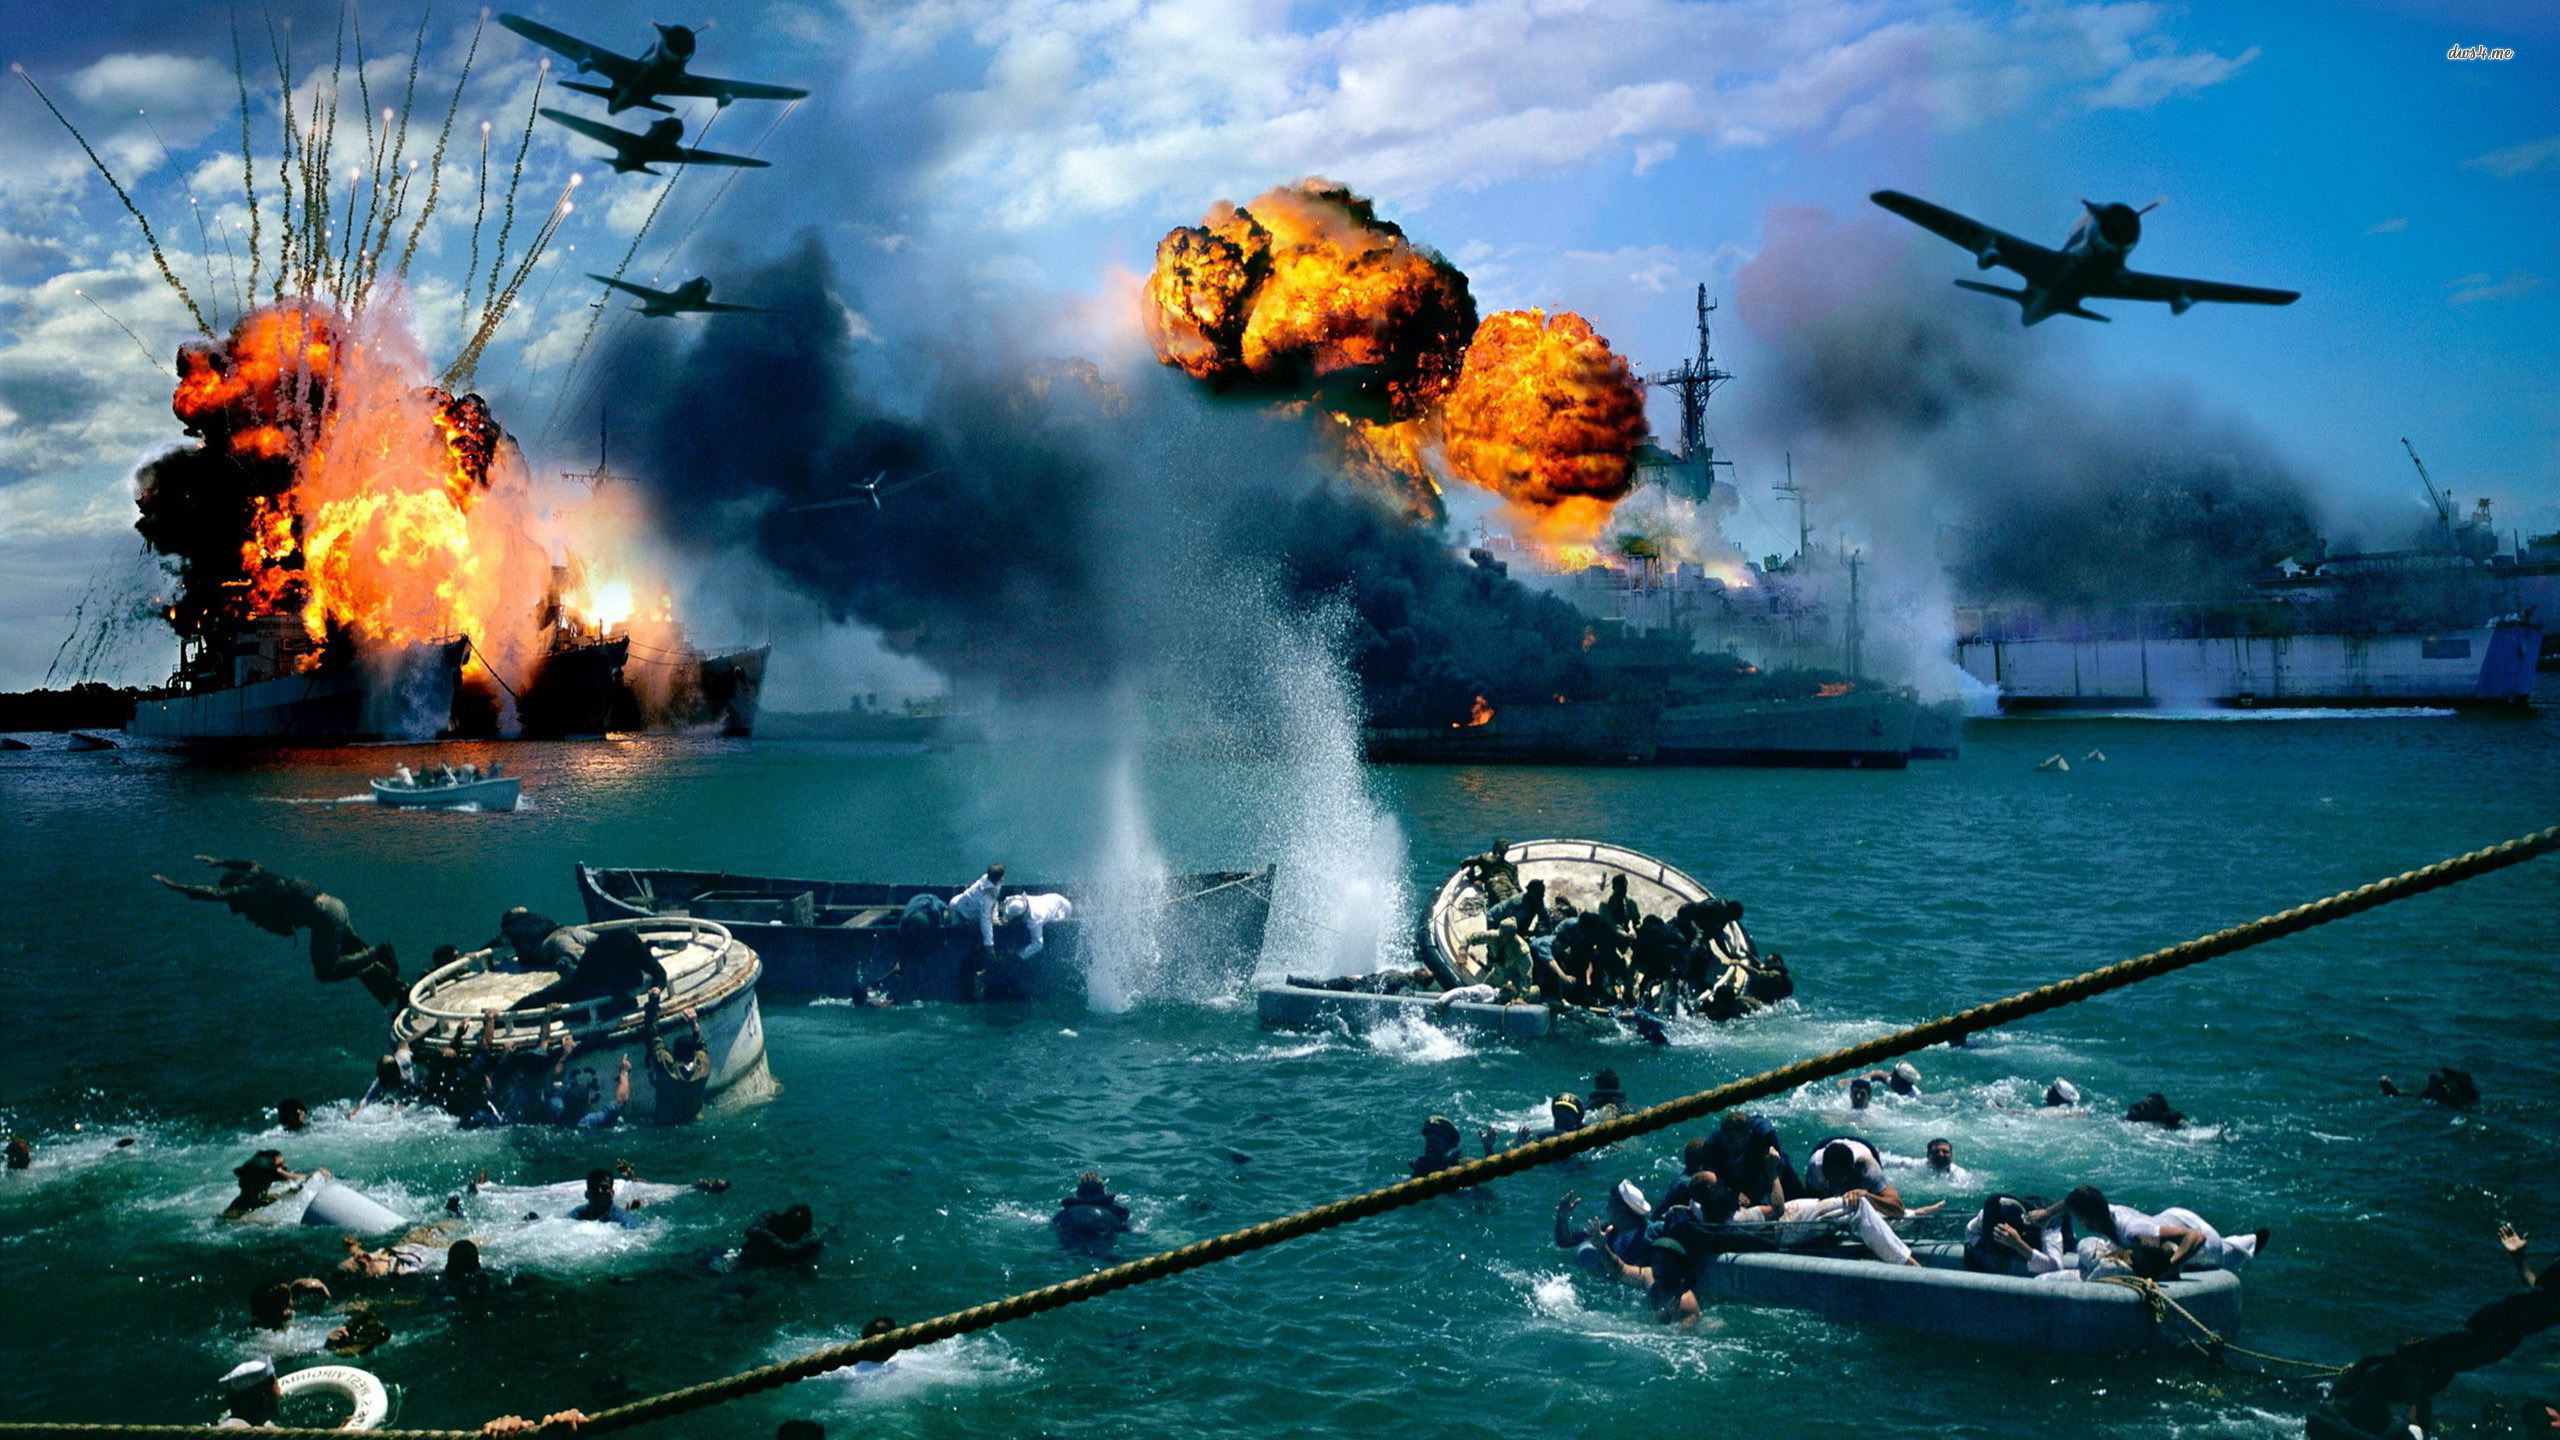 an analysis of the attack on the pearl harbor naval base by the japanese army